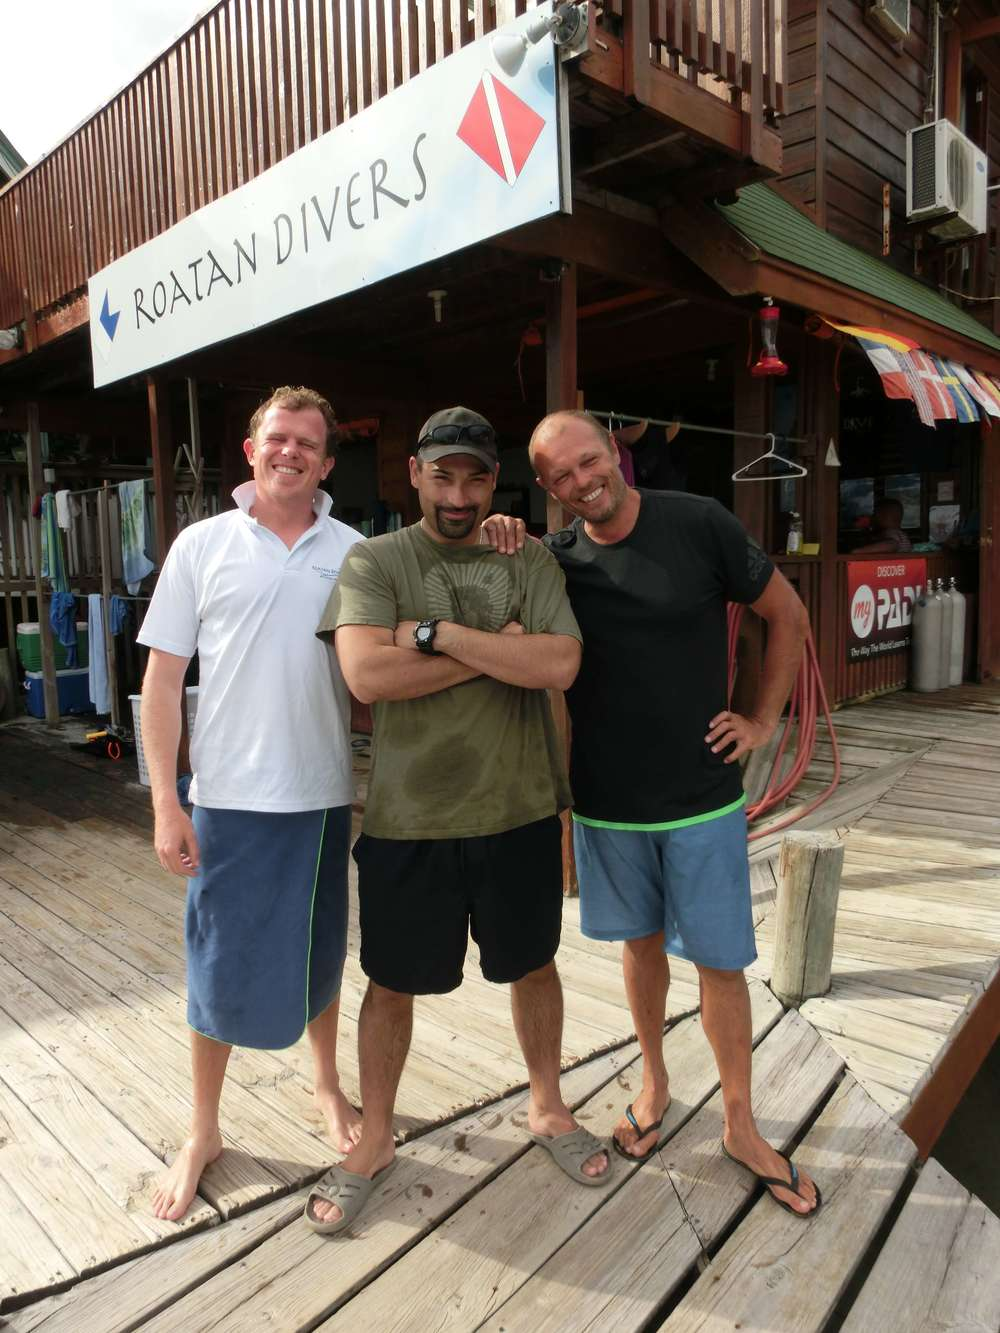 Ed PADI Open Water Touch Roatan Divers